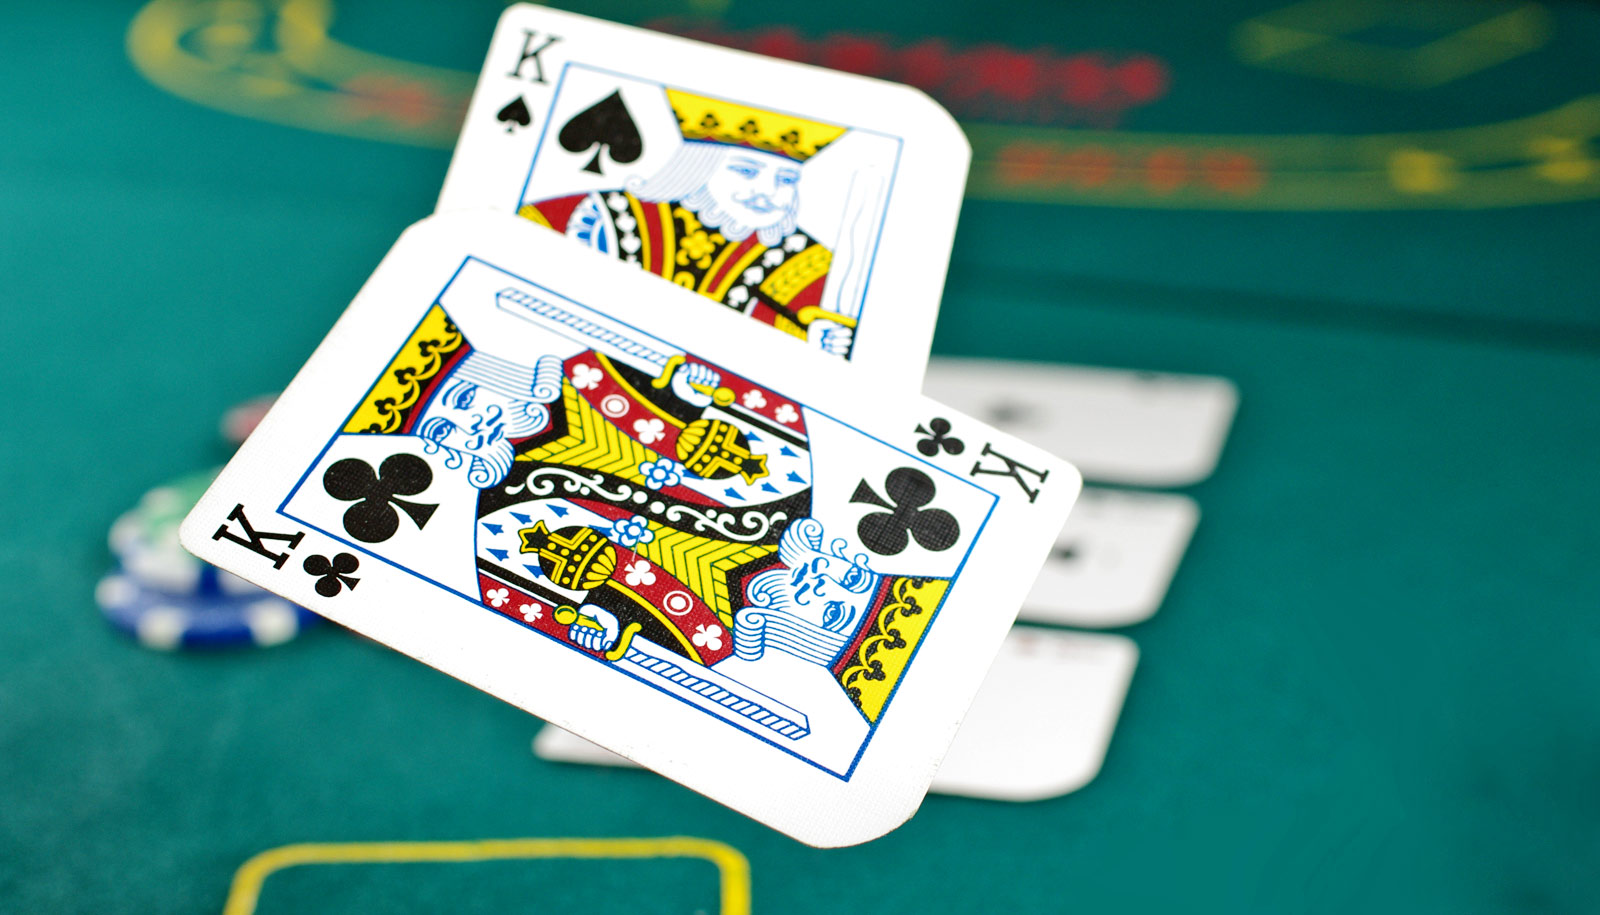 Present and Future of Online Gambling